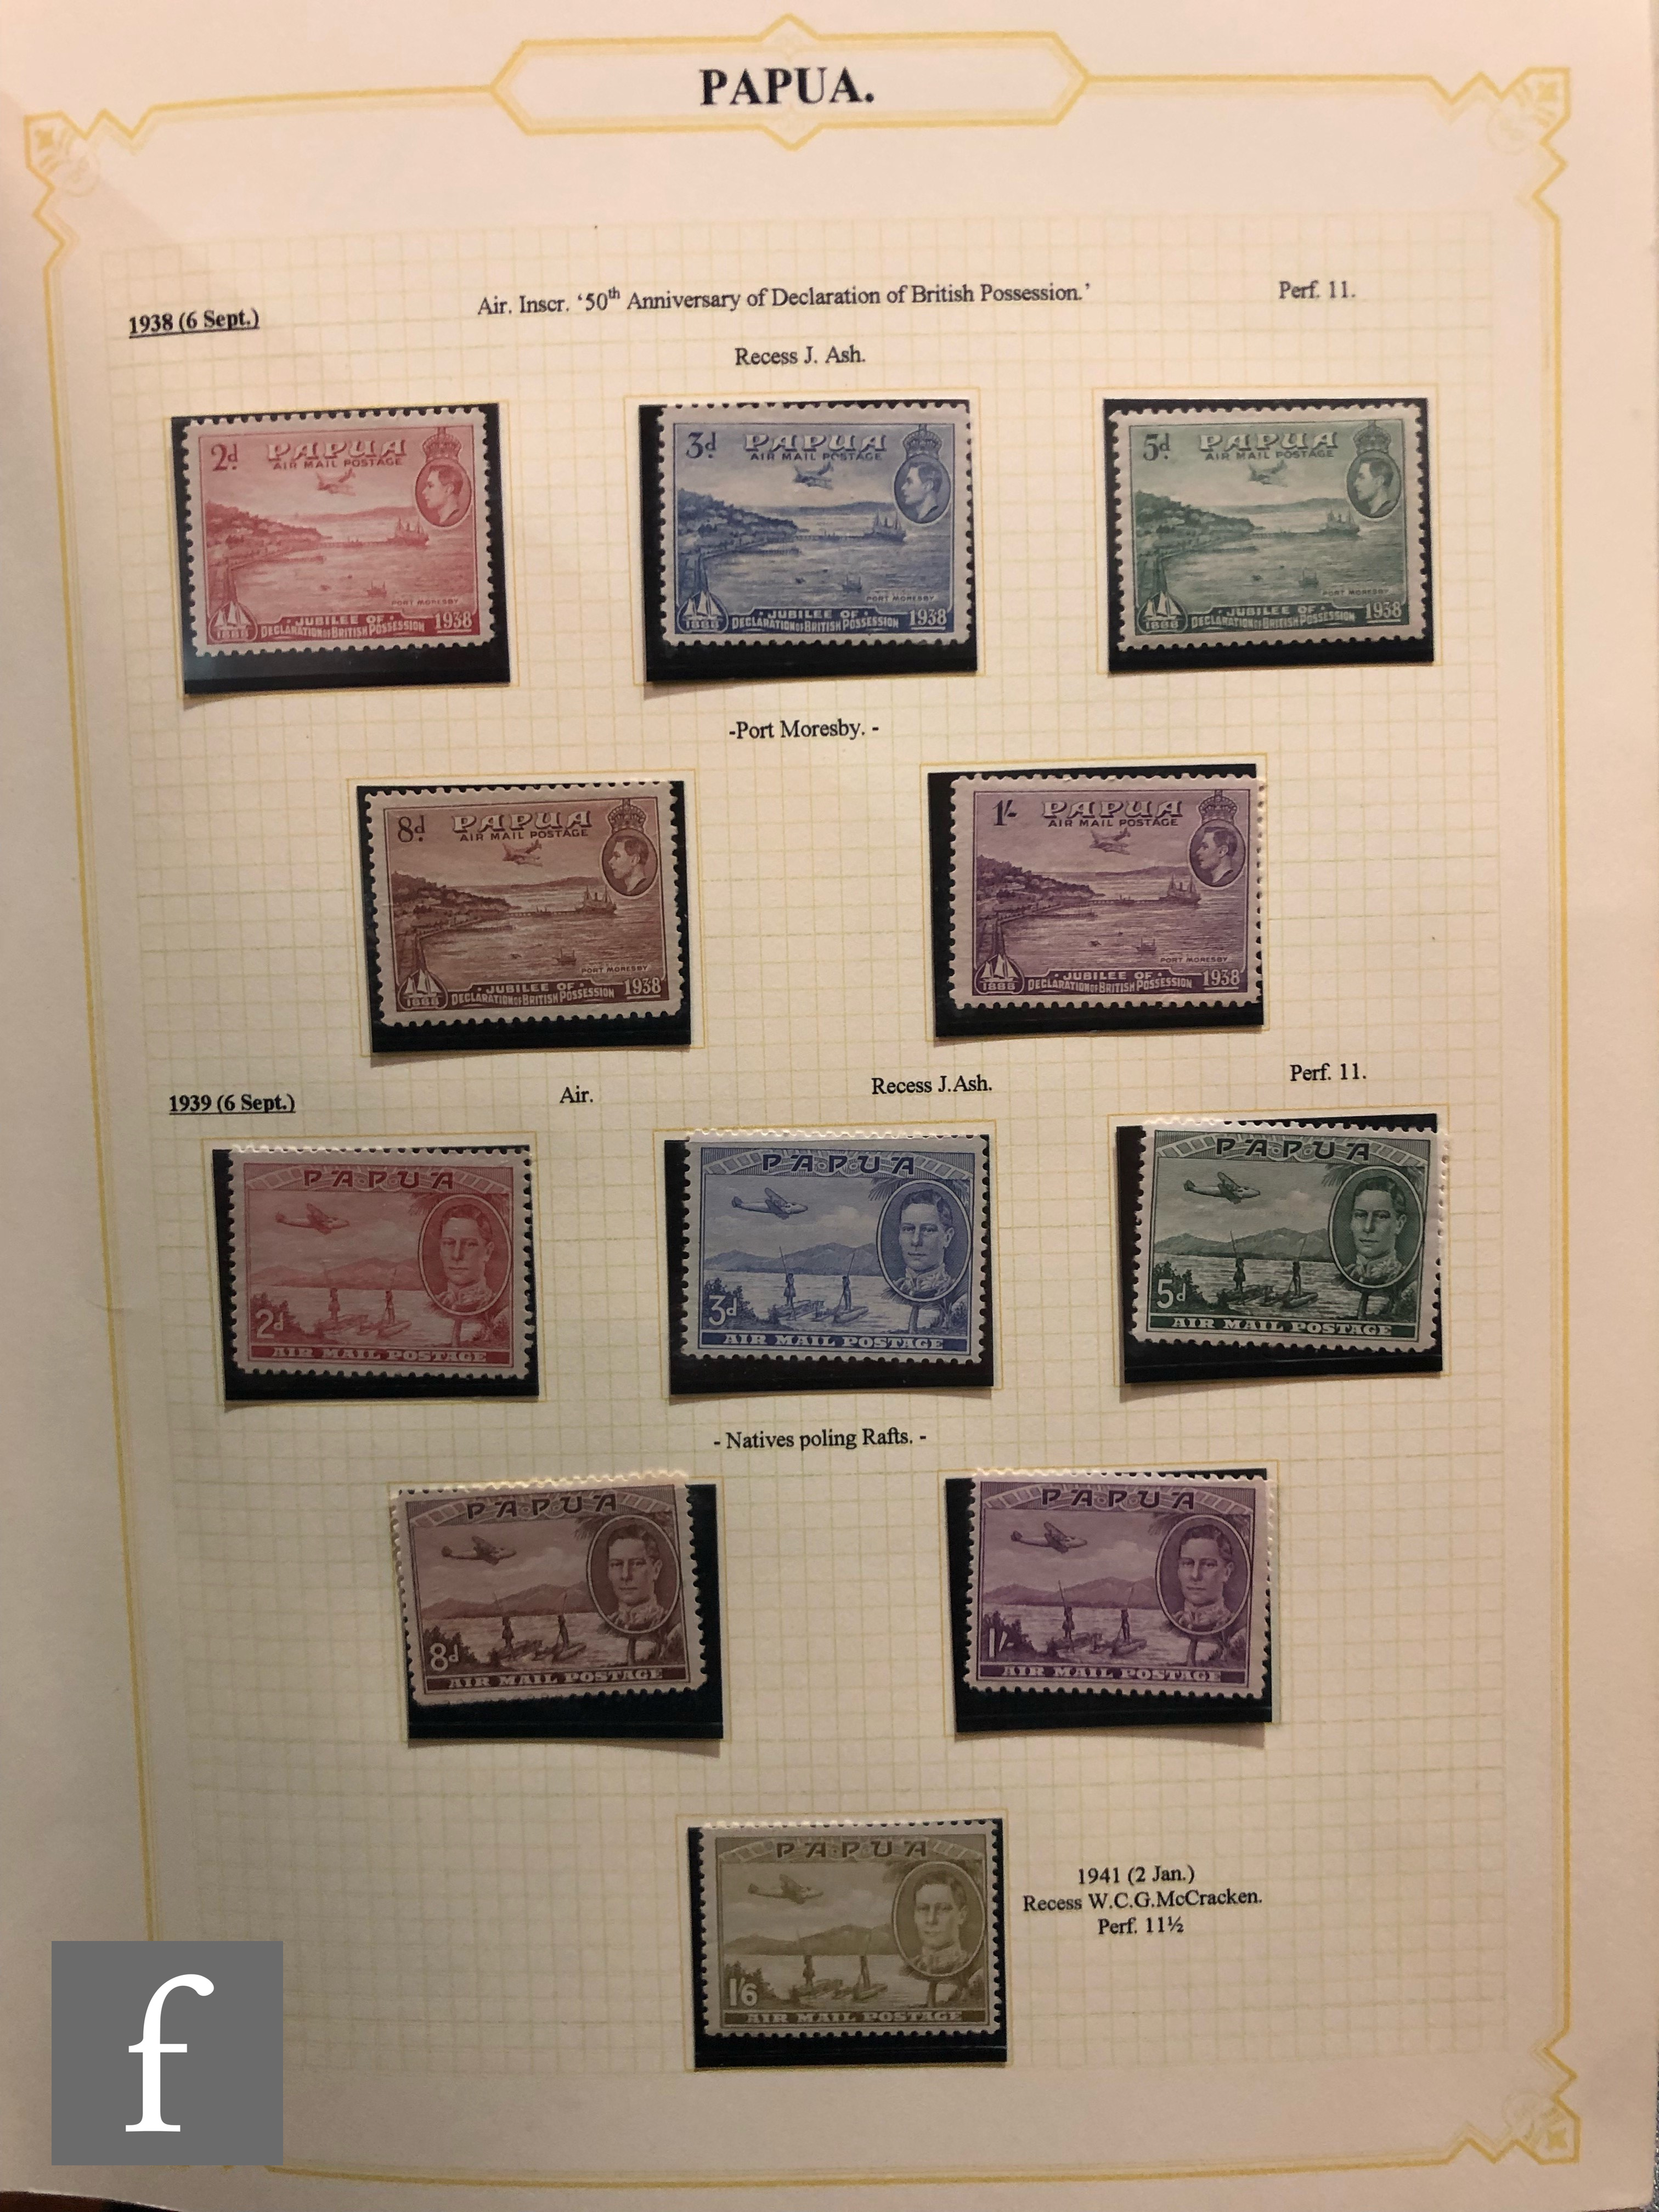 A collection of British Commonwealth postage stamps, King George VI to Queen Elizabeth II, well